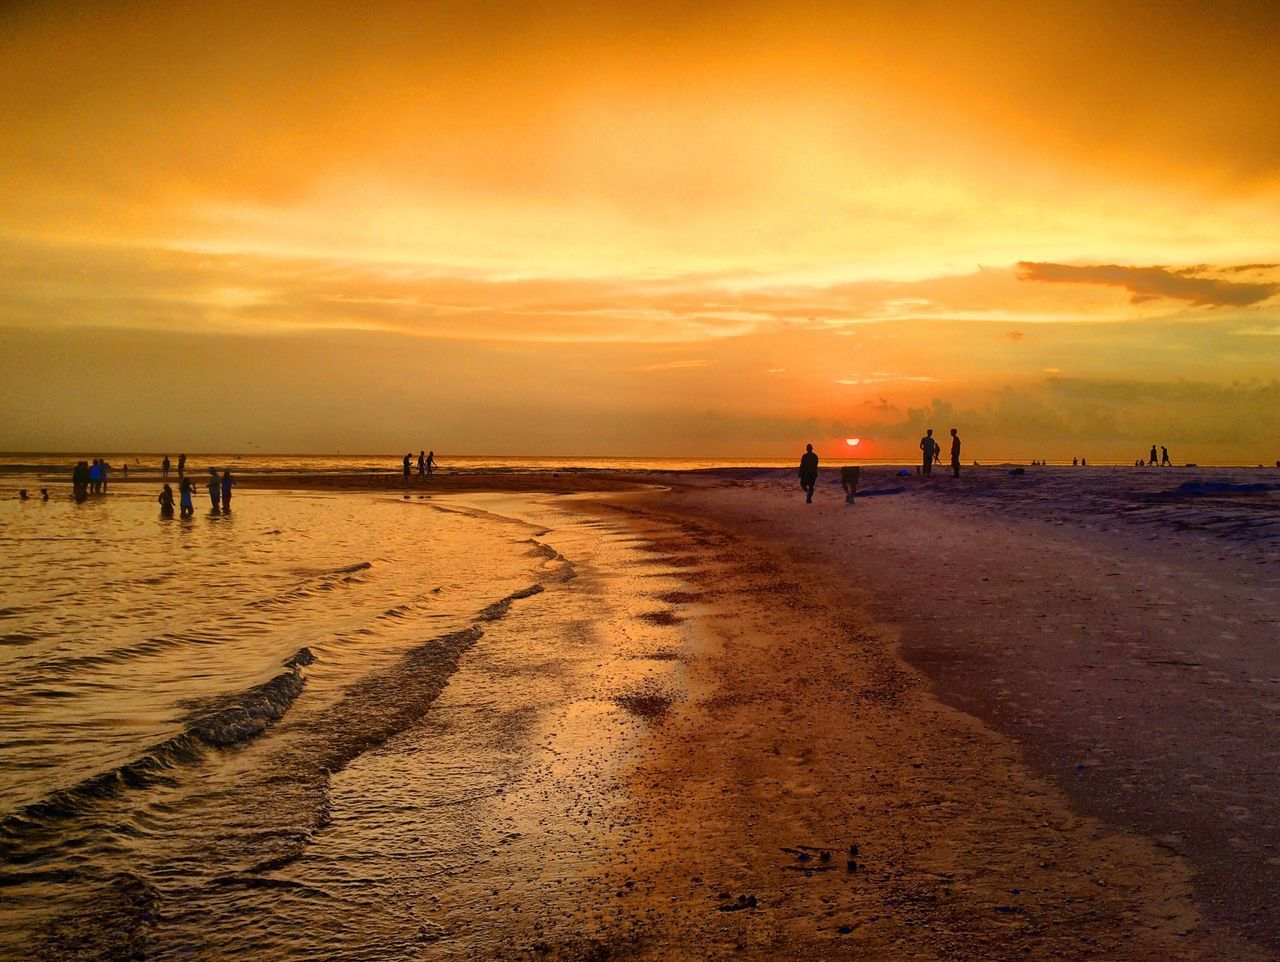 Orange sunset on Lido Key Beach in Florida. Sky Sunset Florida Sunsets Orange Tranquility Outdoors Sunny People Watching Sunset Florida Life Florida Nature Florida Clouds Florida Sunset Florida Sunset Sky Lido Key Beach Sarasota Florida Sarasota